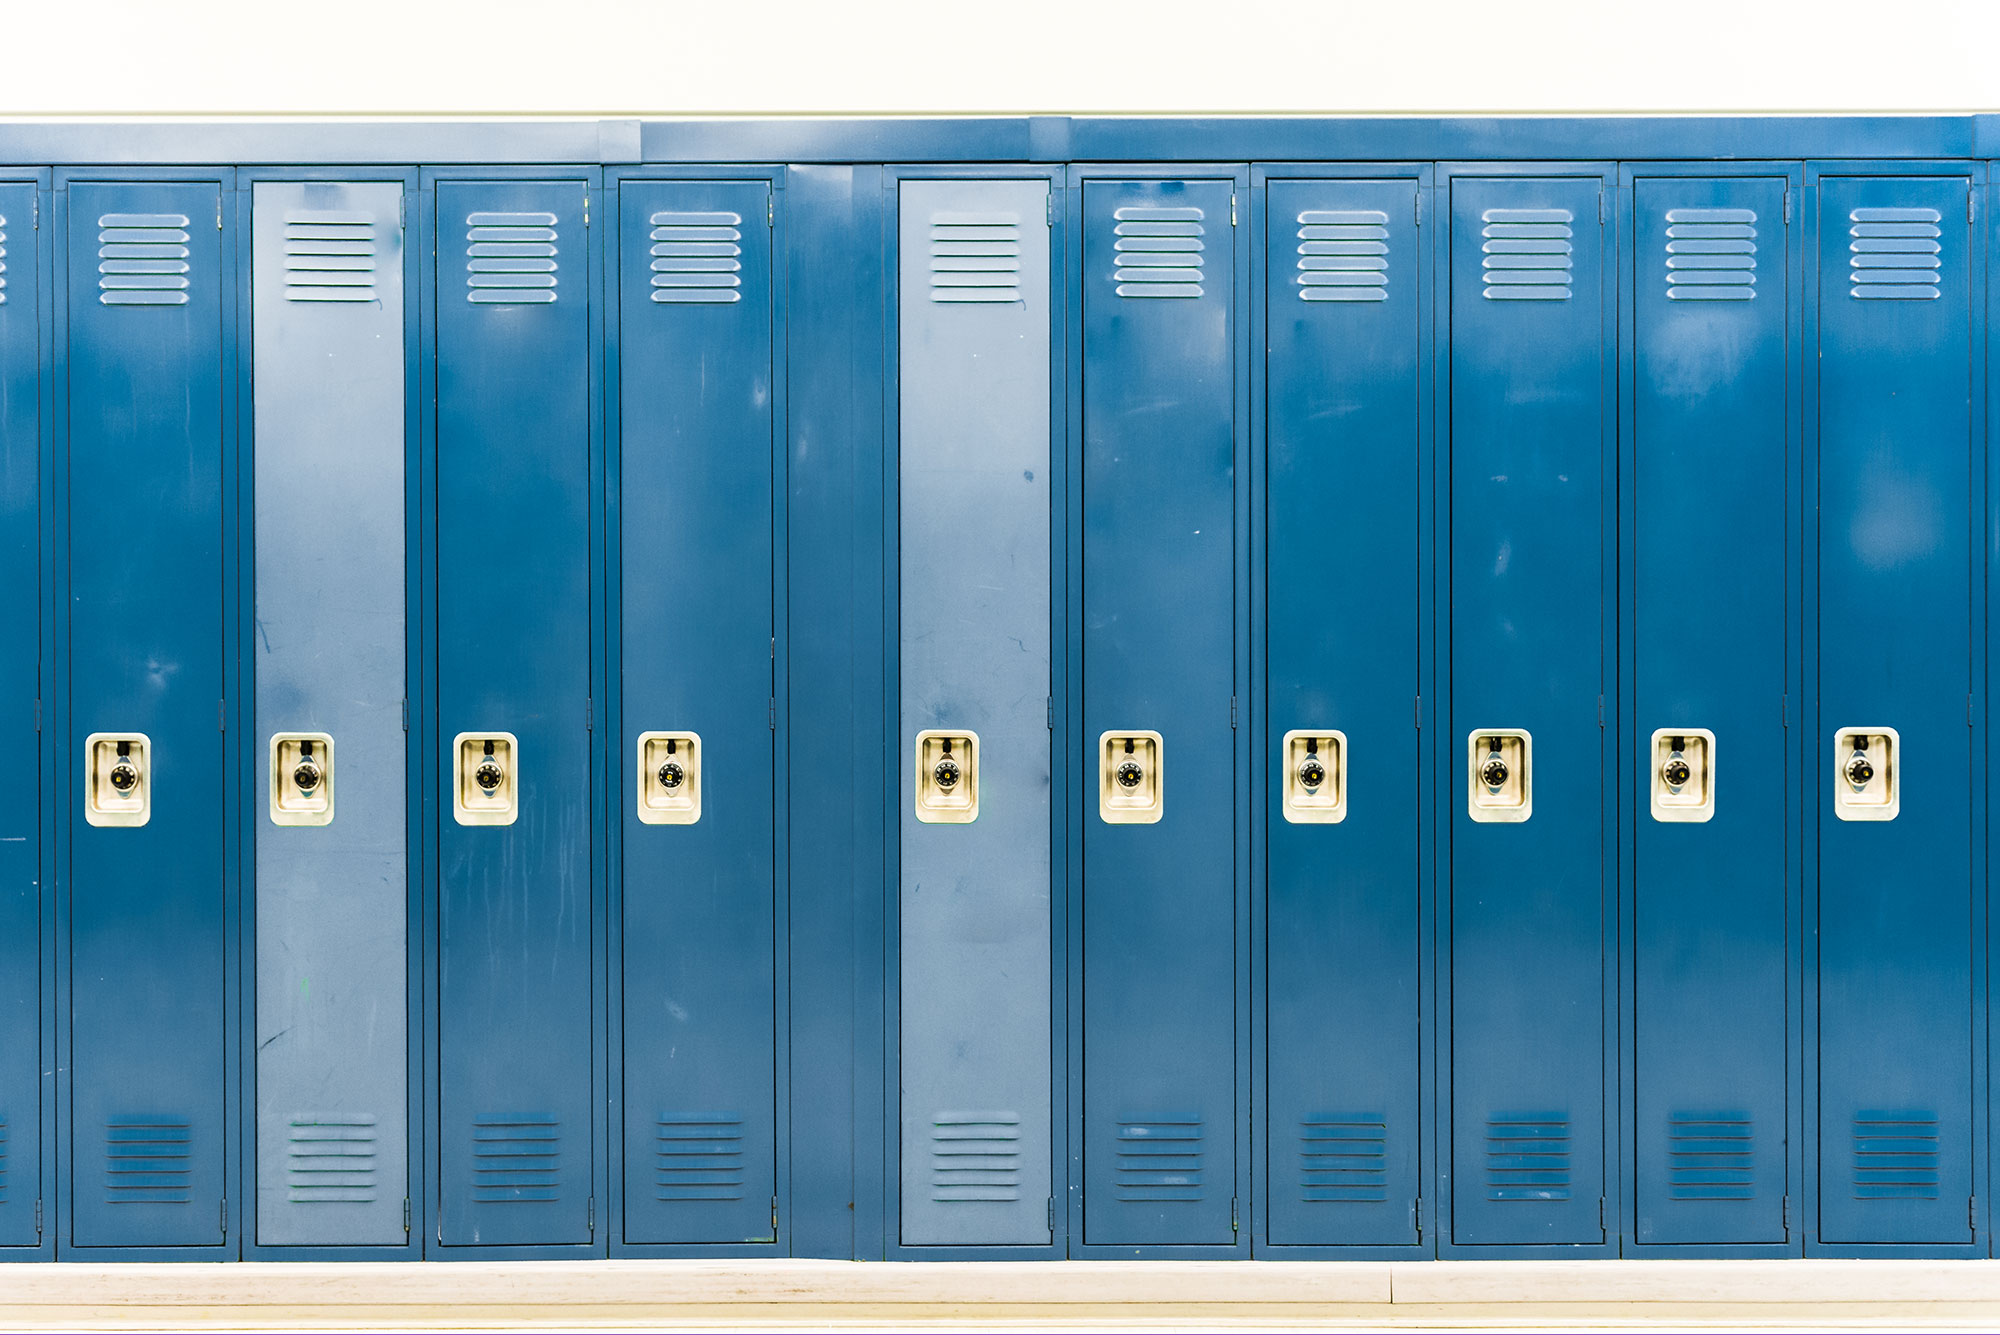 Image of dark and light blue lockers in a row.